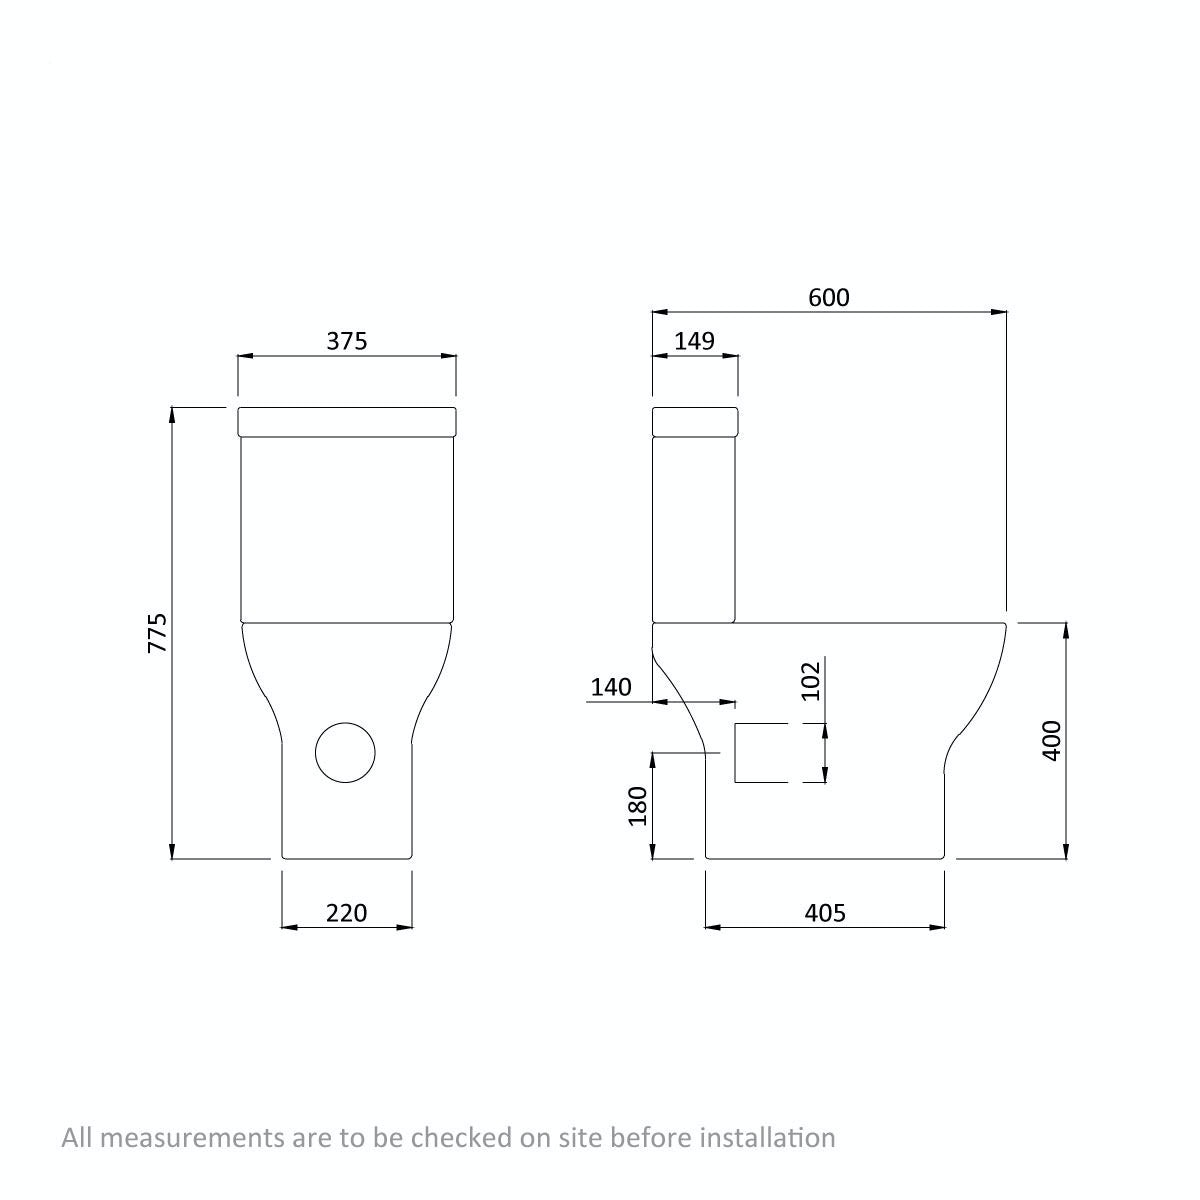 Dimensions for Compact Square close coupled toilet with slimline soft close toilet seat